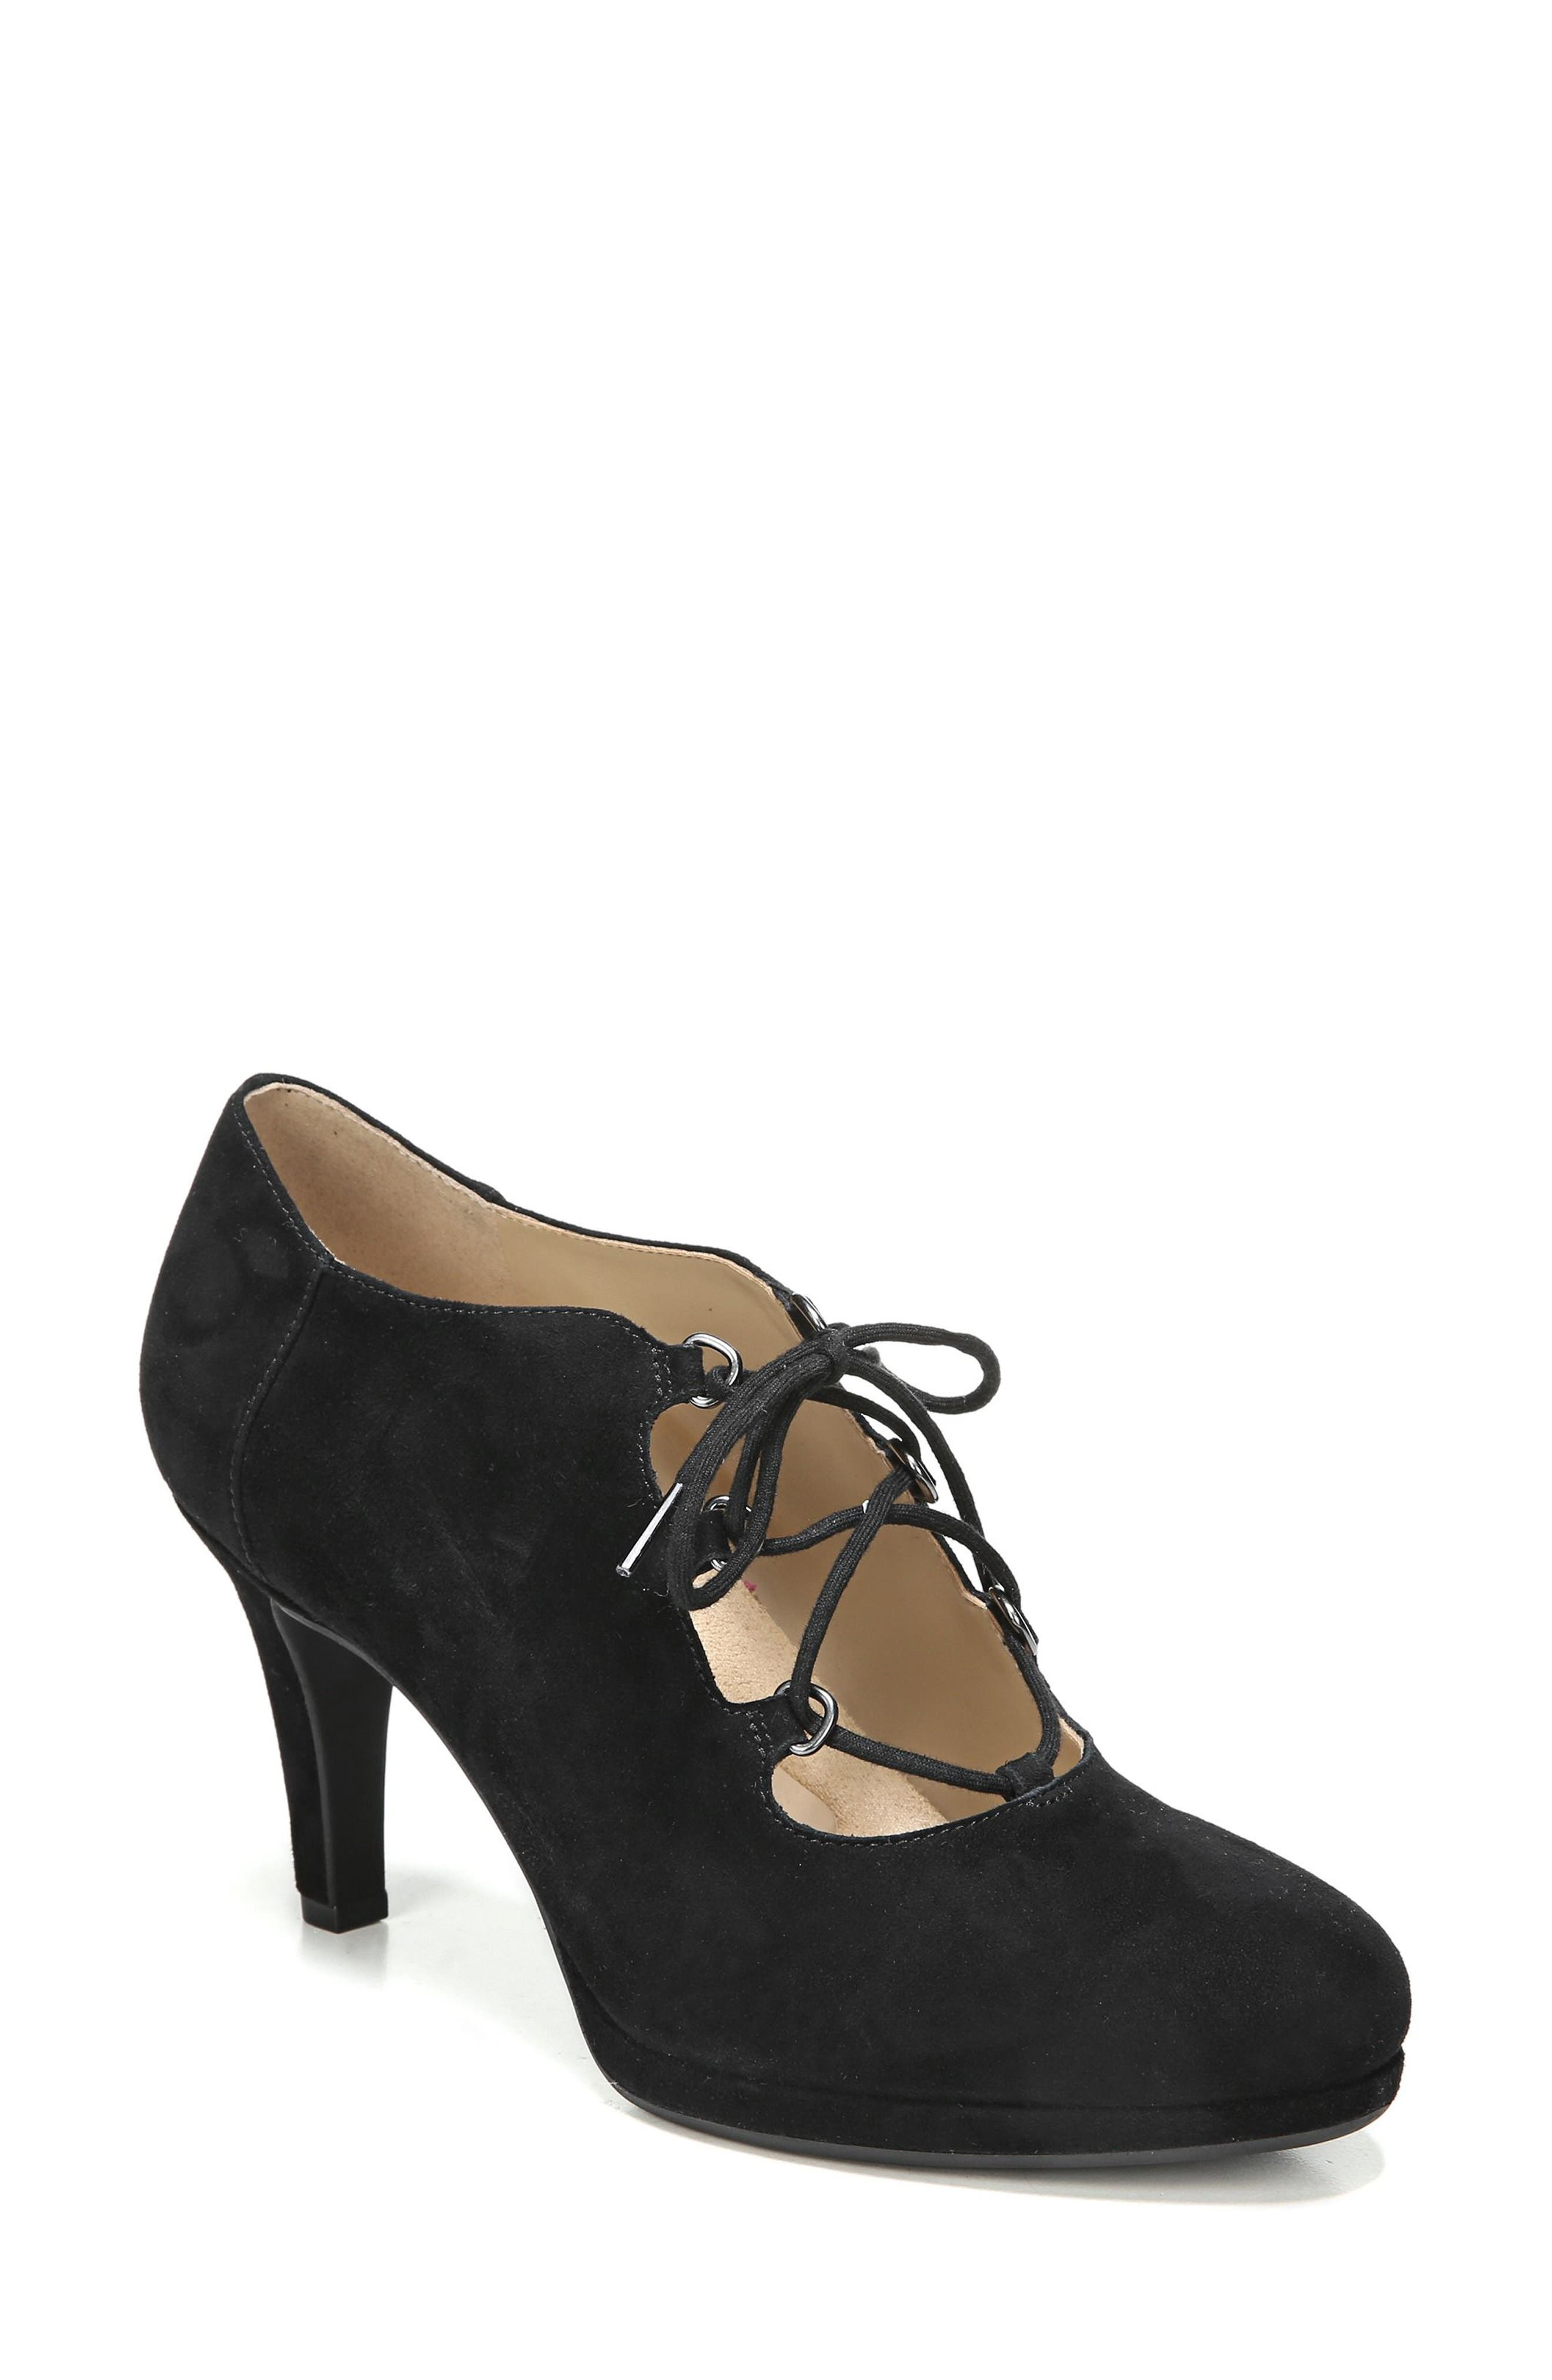 Main Image - Naturalizer Macie Lace-Up Pump (Women)